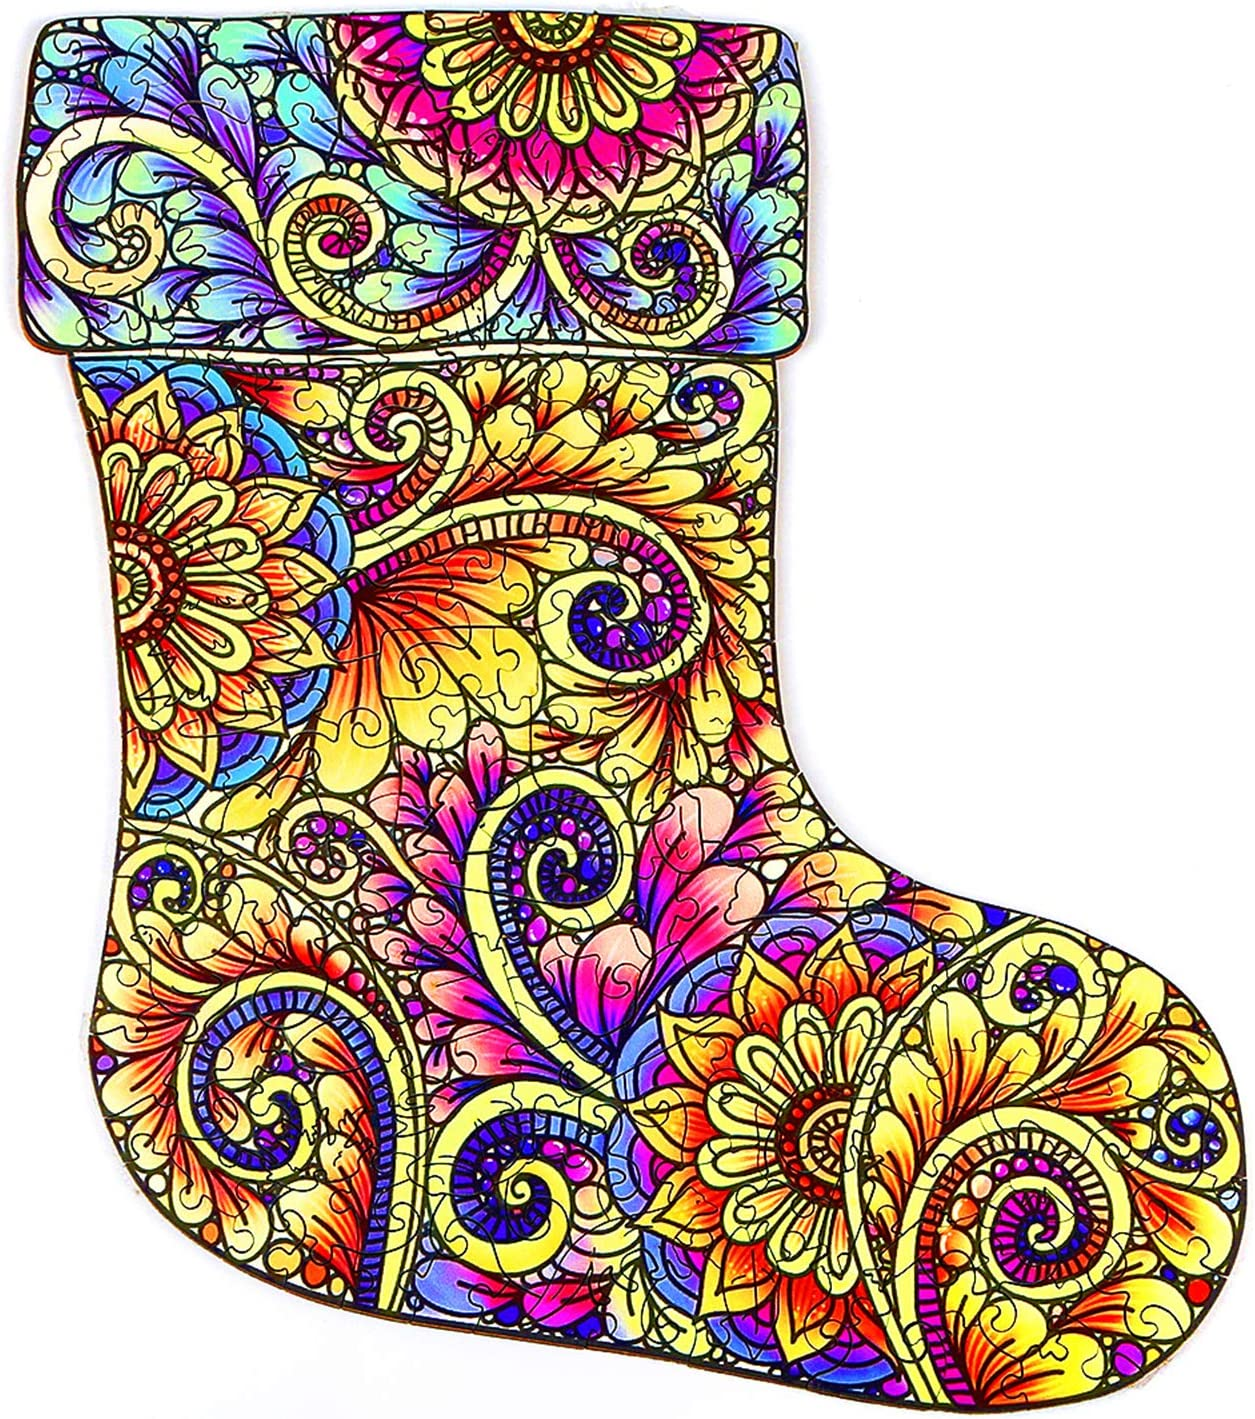 RAYKUL Wooden Jigsaw Puzzles for Adults Unique Shape Puzzle Pieces Jigsaw Puzzles Gorgeous Christmas Socks Puzzles Game Gift for Family Friends Christmas Socks Puzzle, Small,6.1x9.1